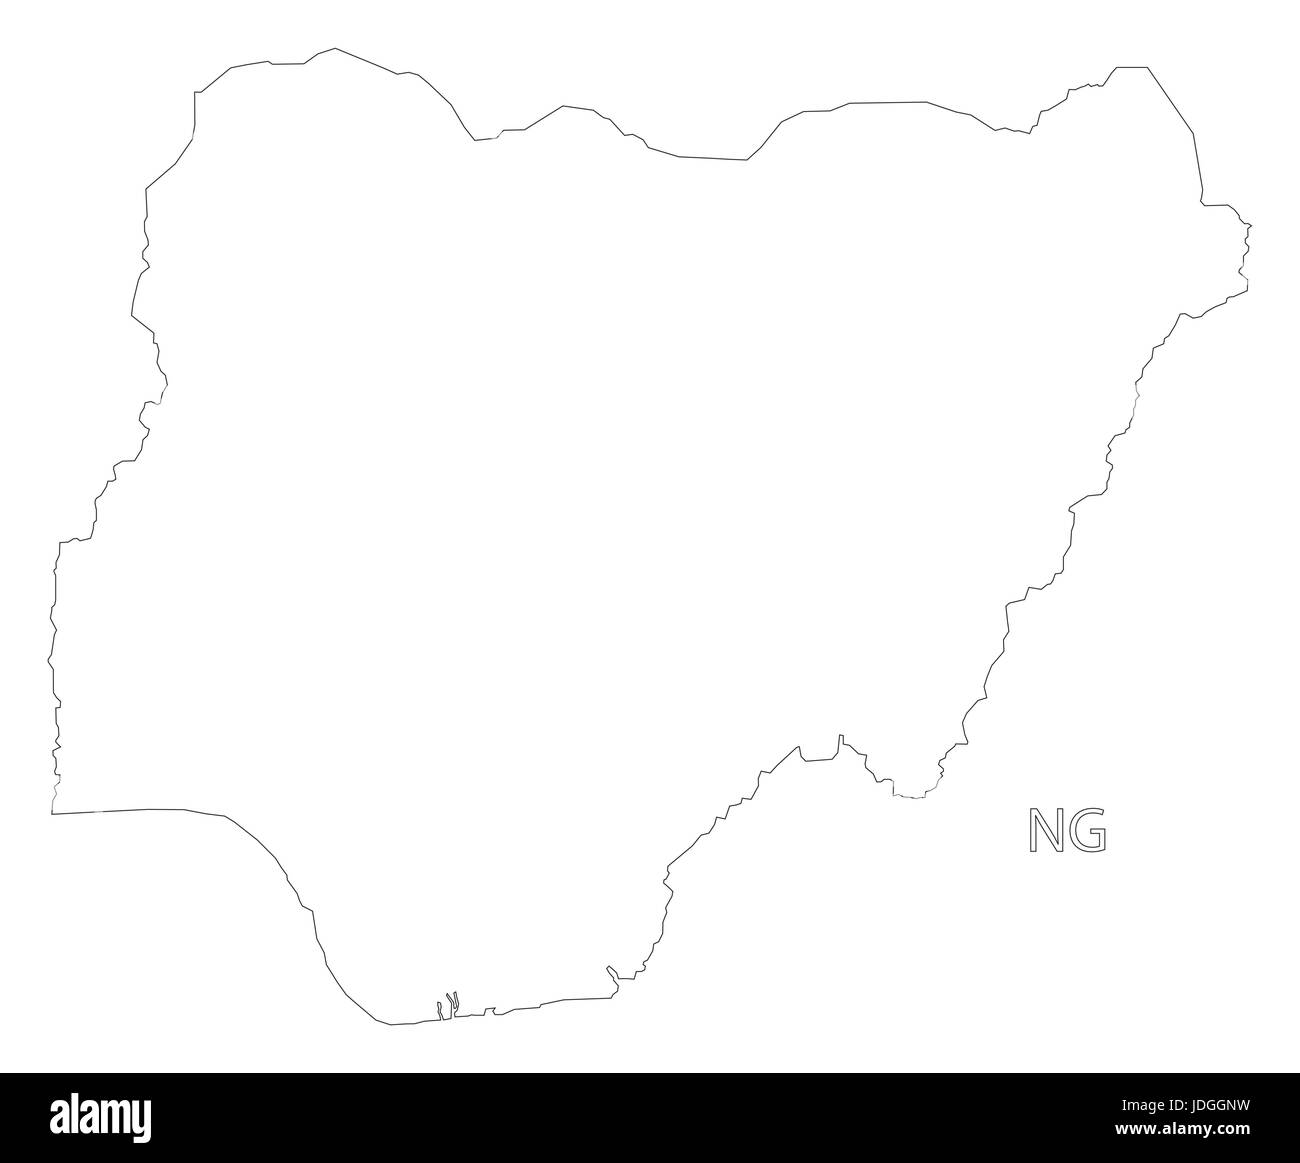 Nigeria outline silhouette map illustration with black shape - Stock Image